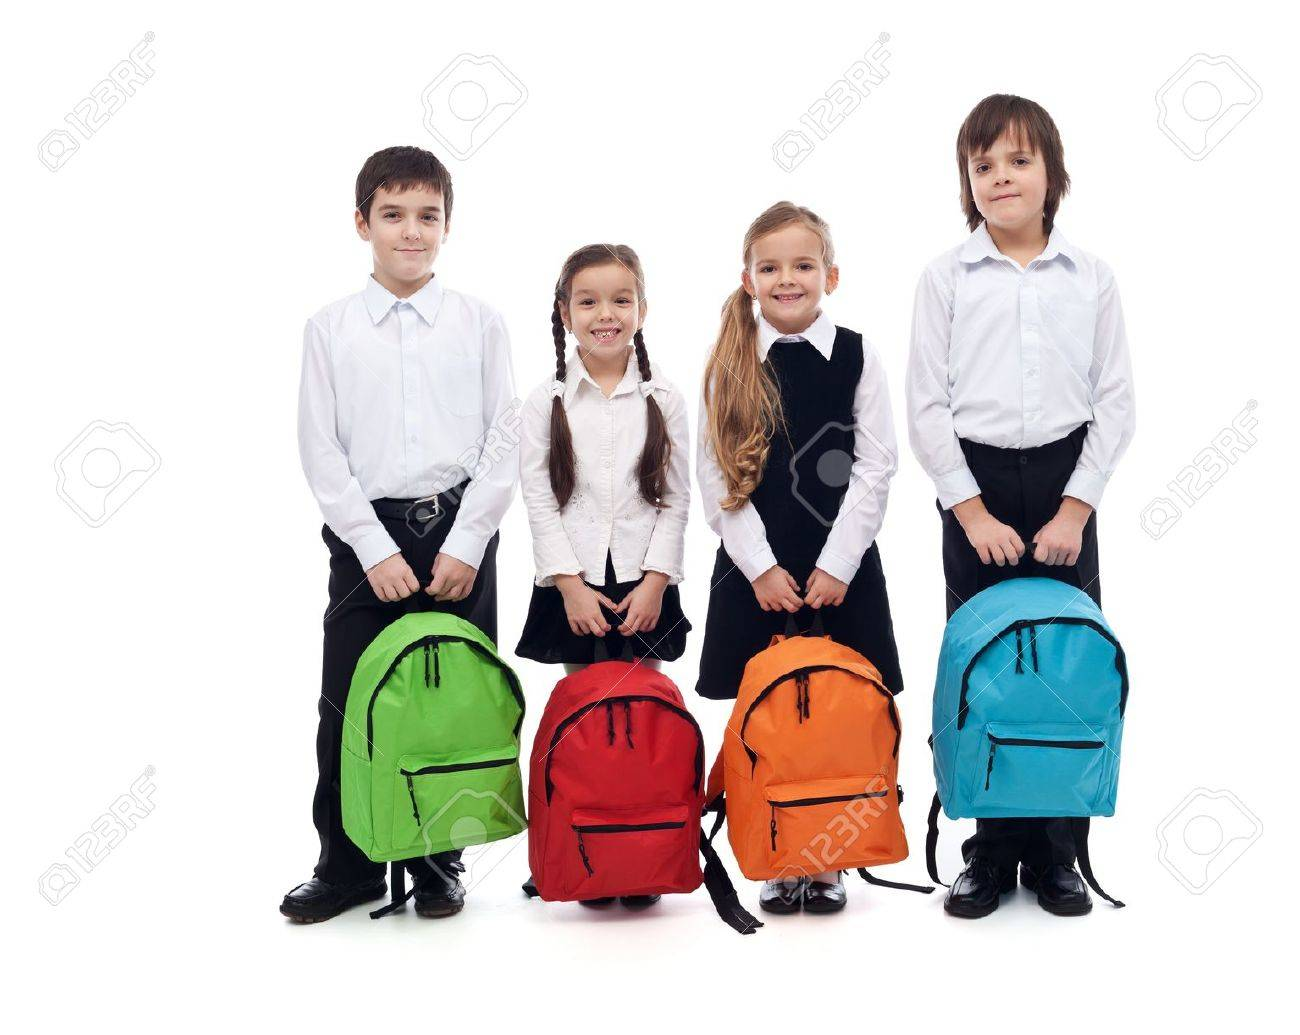 Group of happy kids with schoolbags - back to school concept, isolated - 21140128